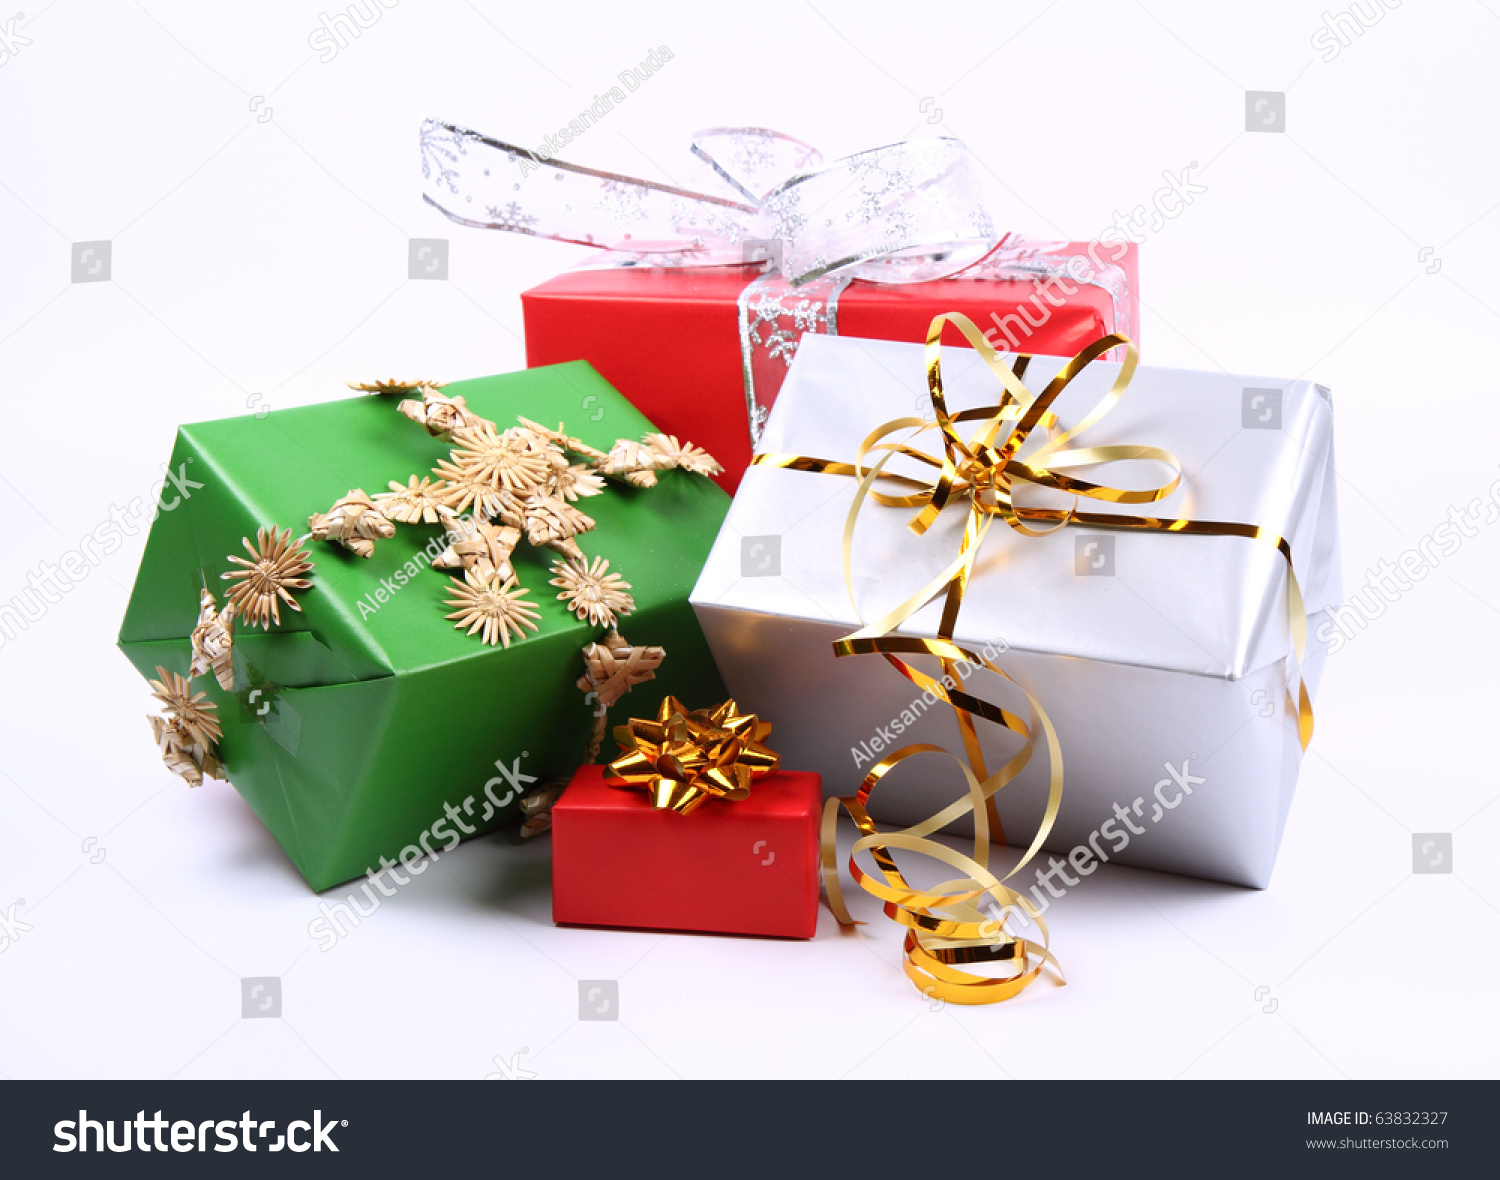 Gifts In Silver Green And Red Wrapping With Bows On White